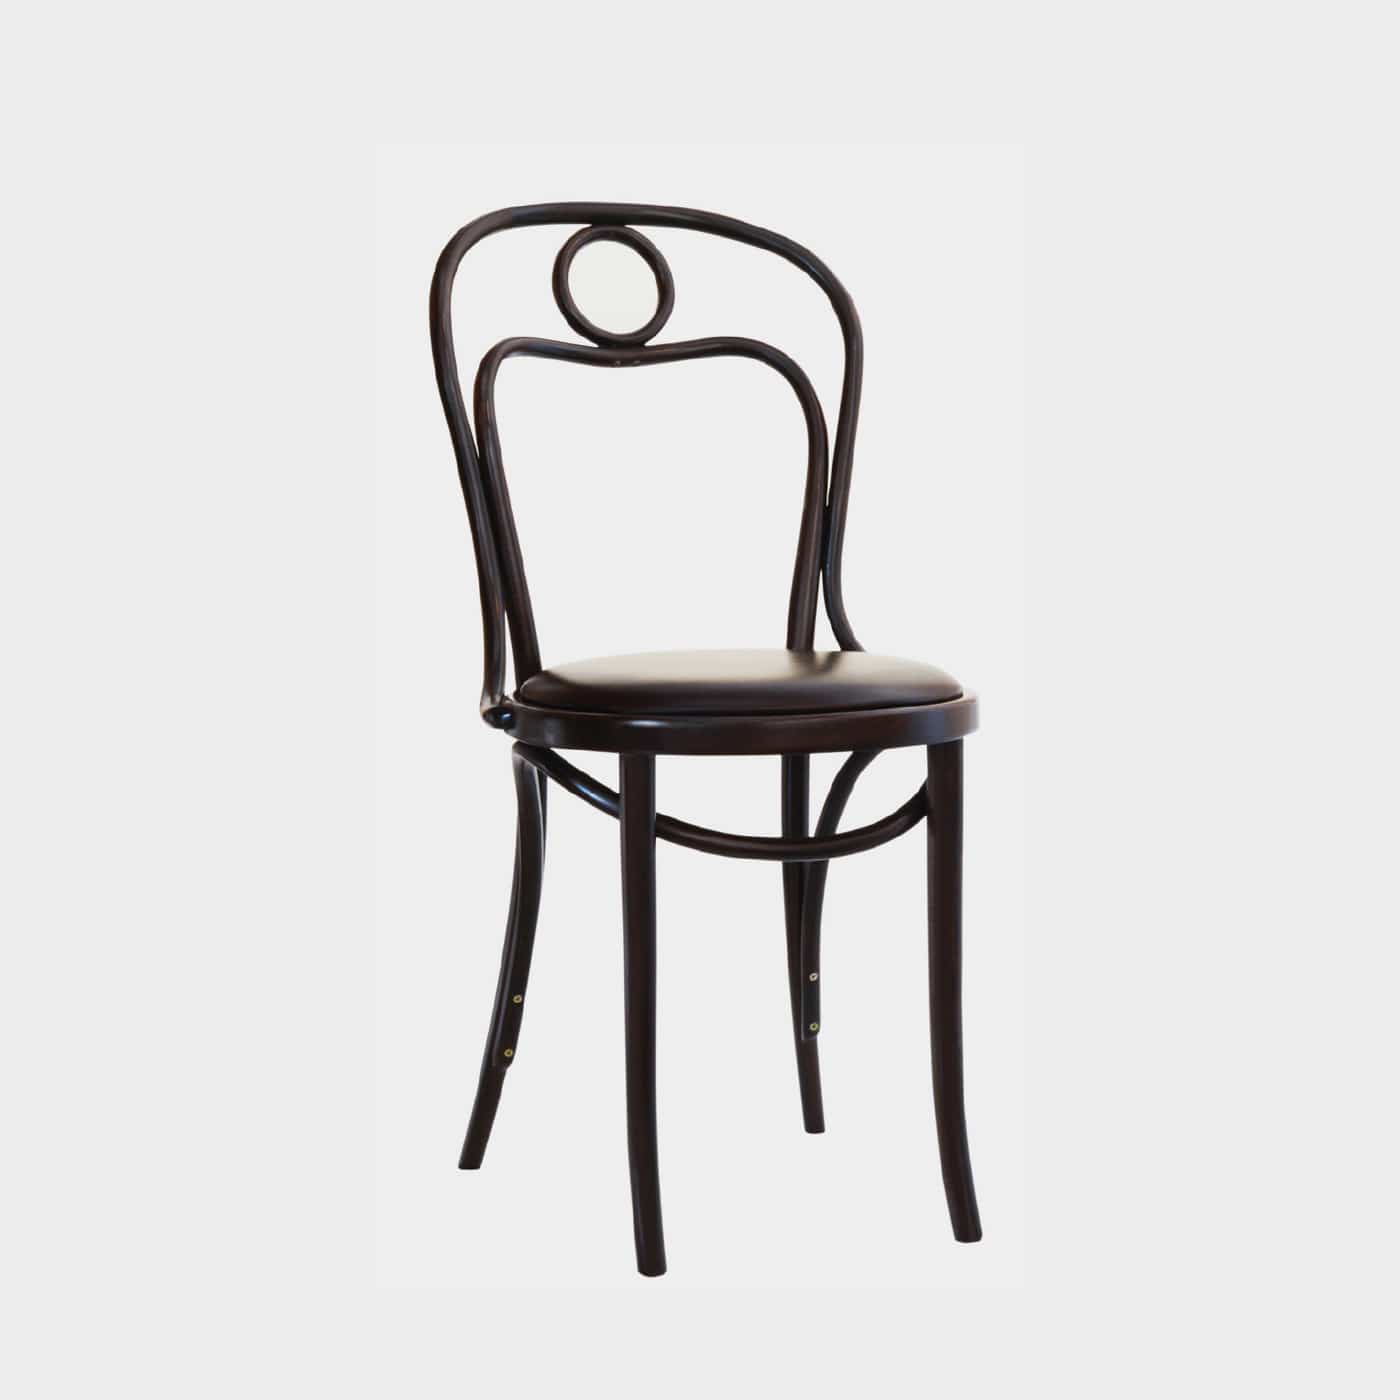 Thonet Fureau Chair from Monsoon Living